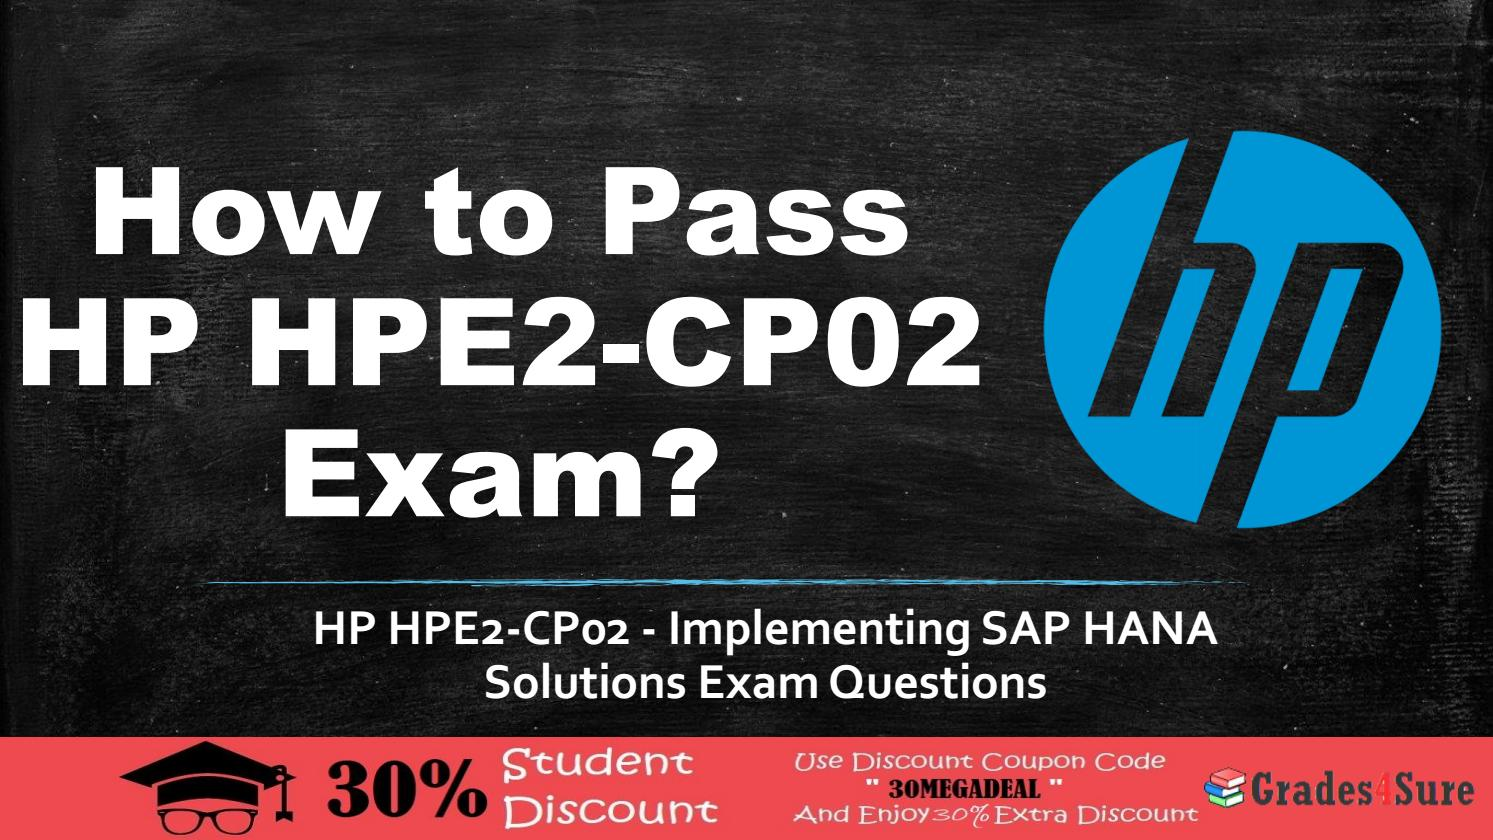 HP SAP HANA Solutions HPE2-CP02 Exam Question Answers by